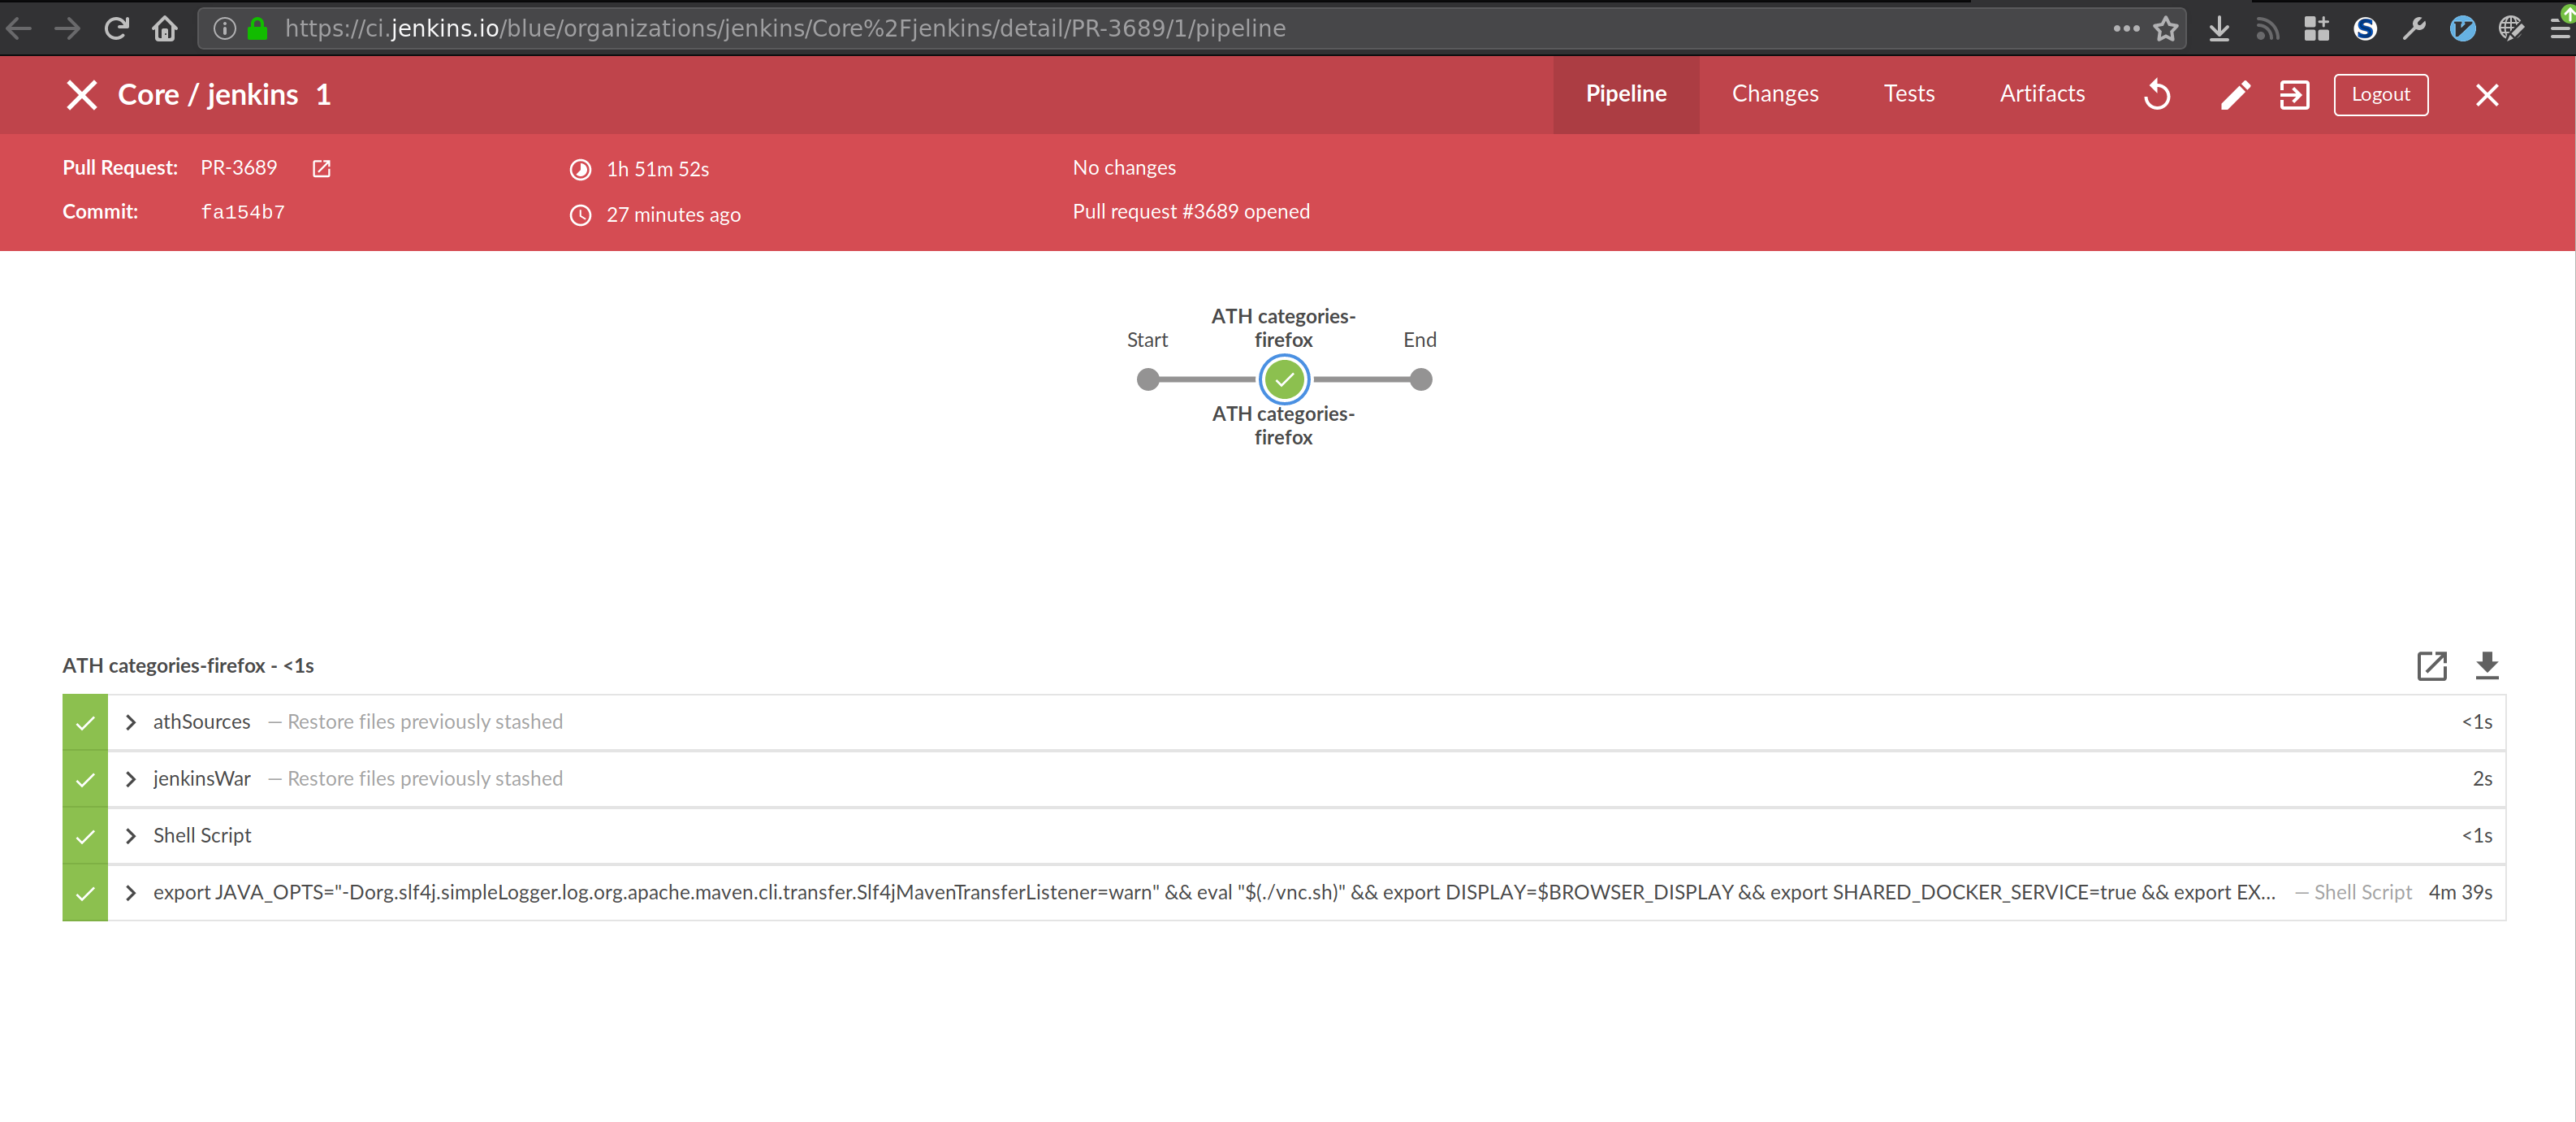 JENKINS-53990] Pipeline scheduling errors do not show up in Blue